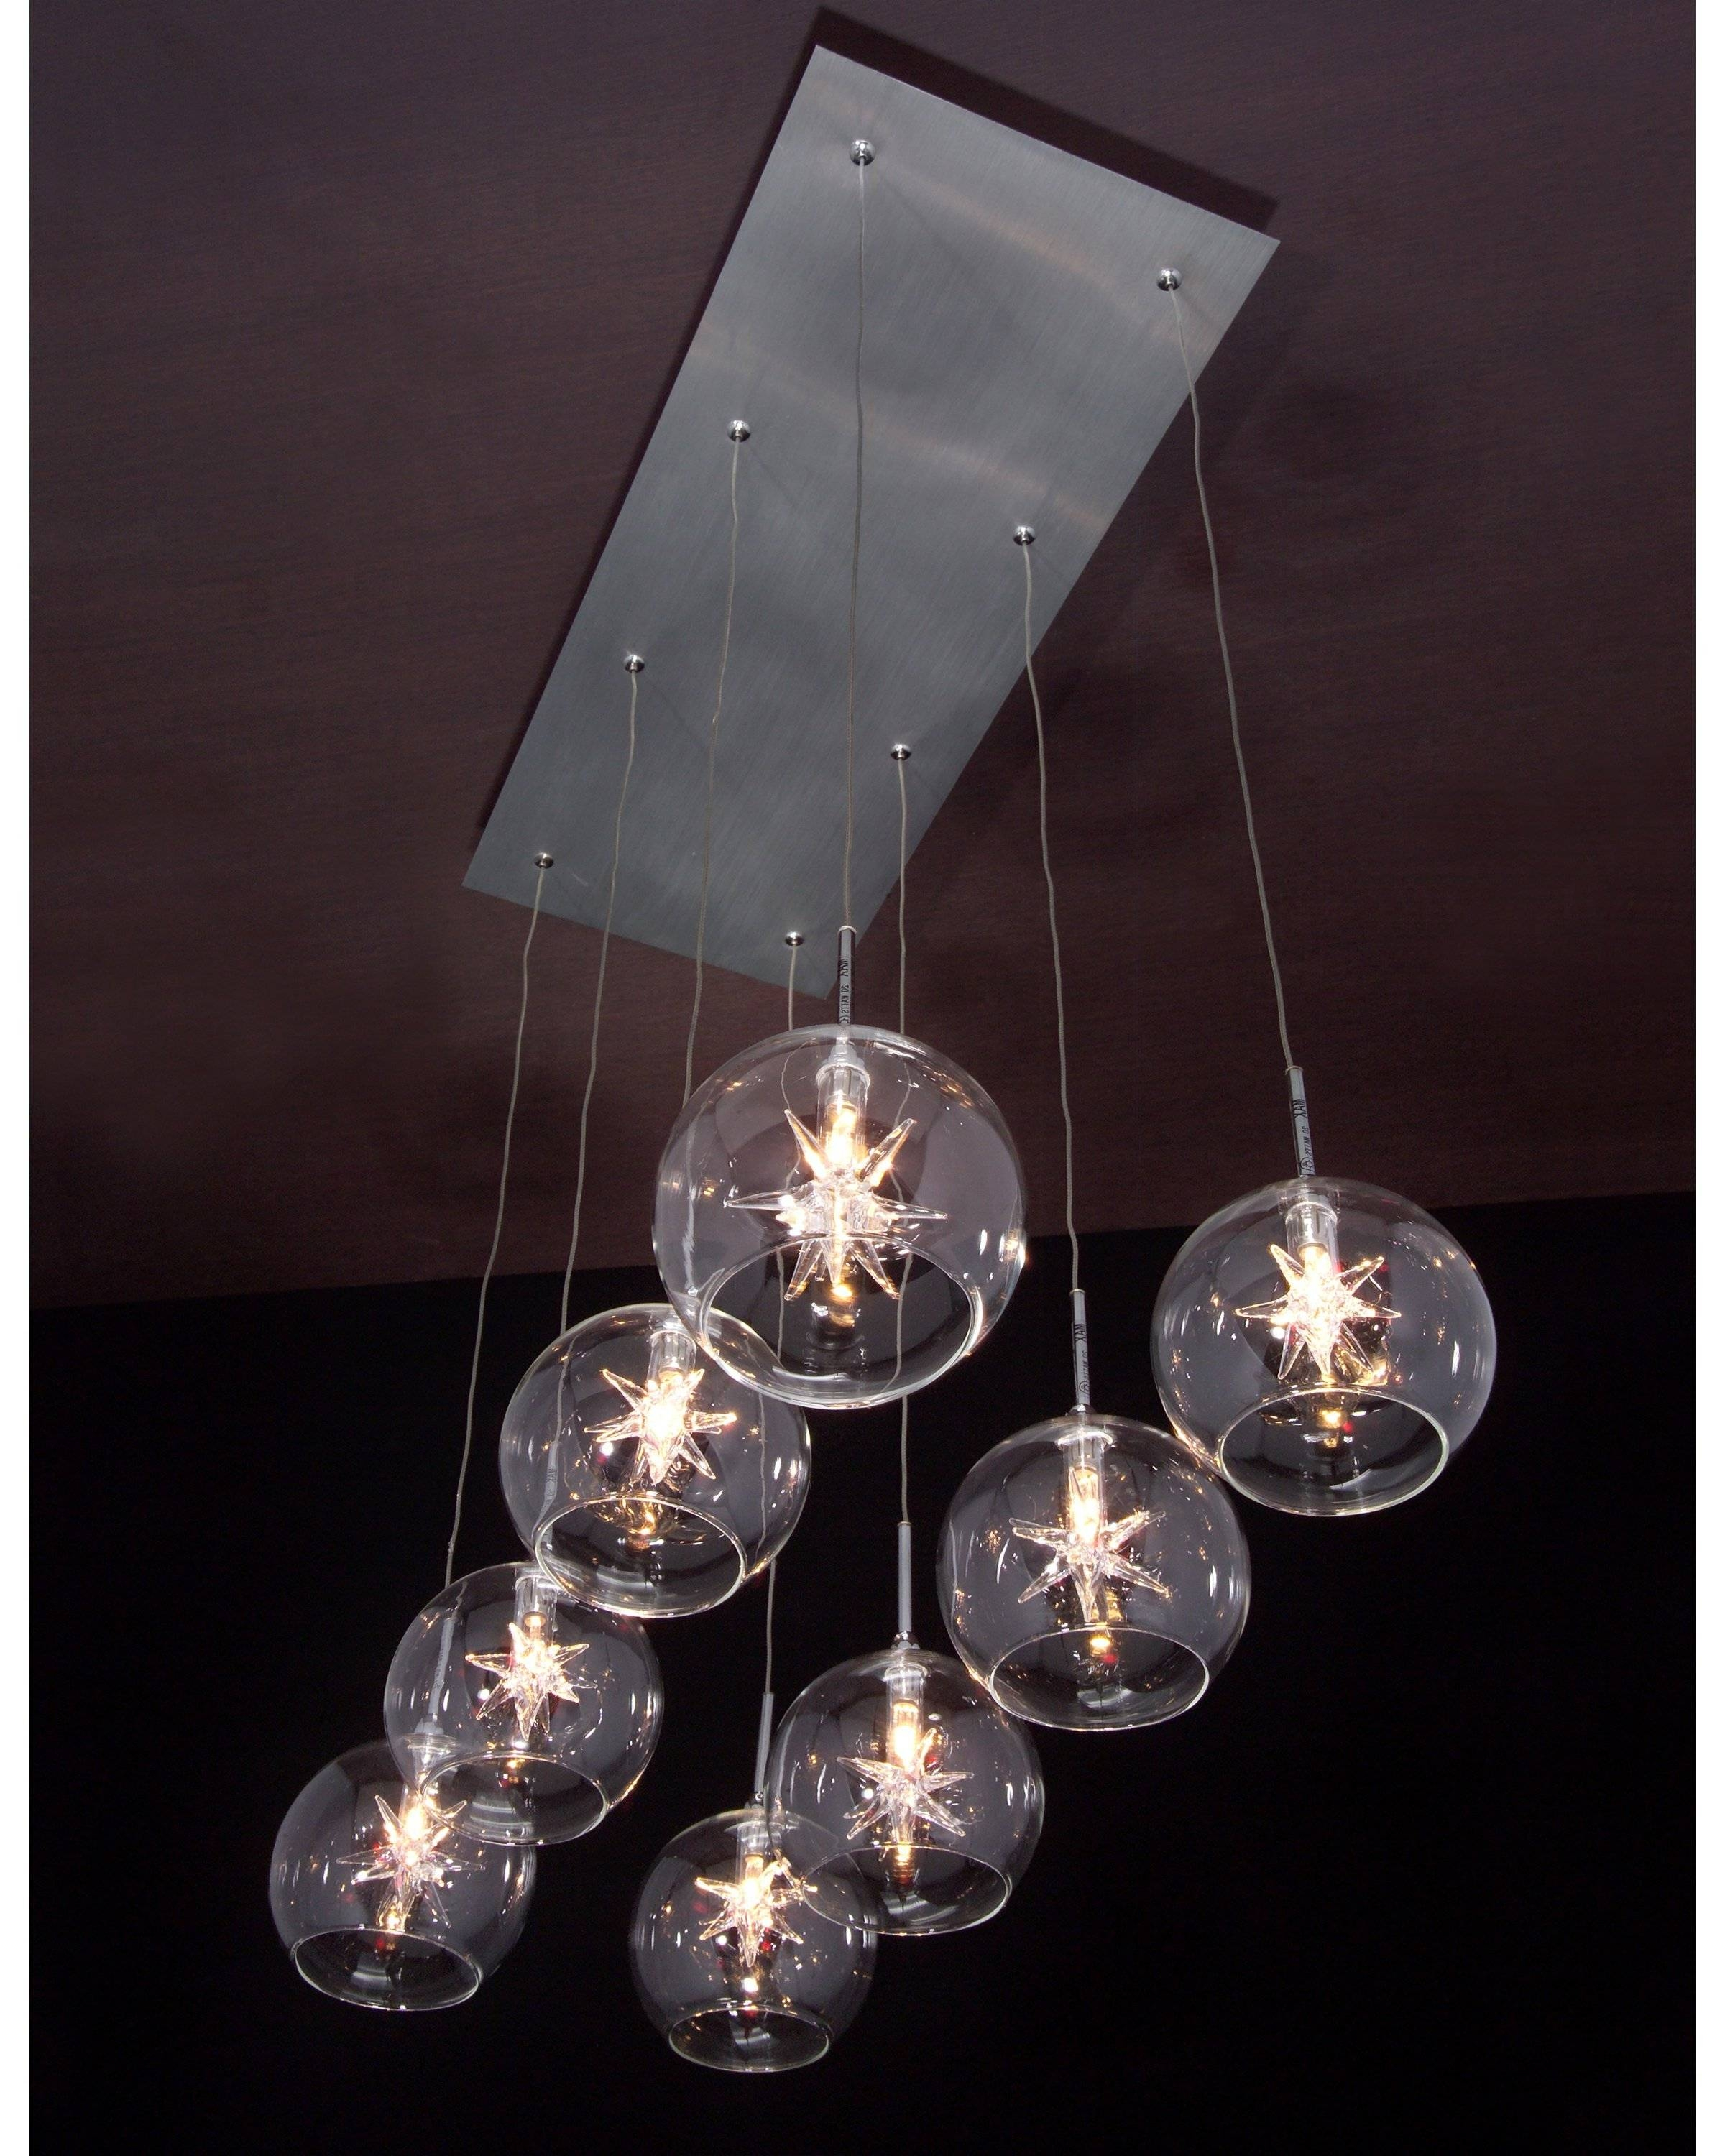 Fixtures Light : Agreeable Multi Pendant Light Fixture Kit , Multi regarding Multiple Pendant Lights (Image 5 of 15)